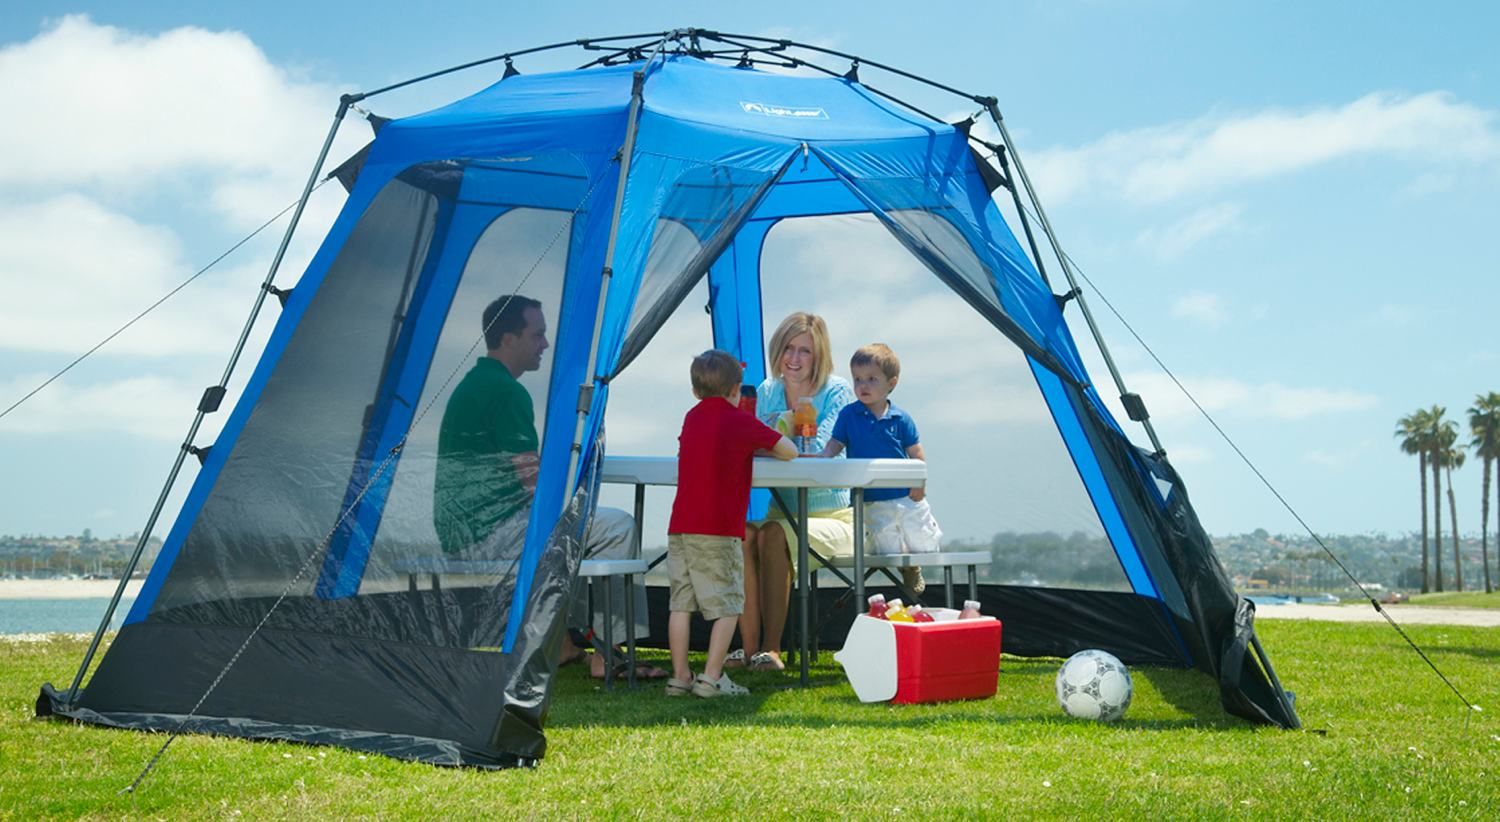 LightSpeed Outdoors TENTS BLACK and BLUE & LightSpeed Outdoors TENTS BLACK and BLUE NYFastFurniture